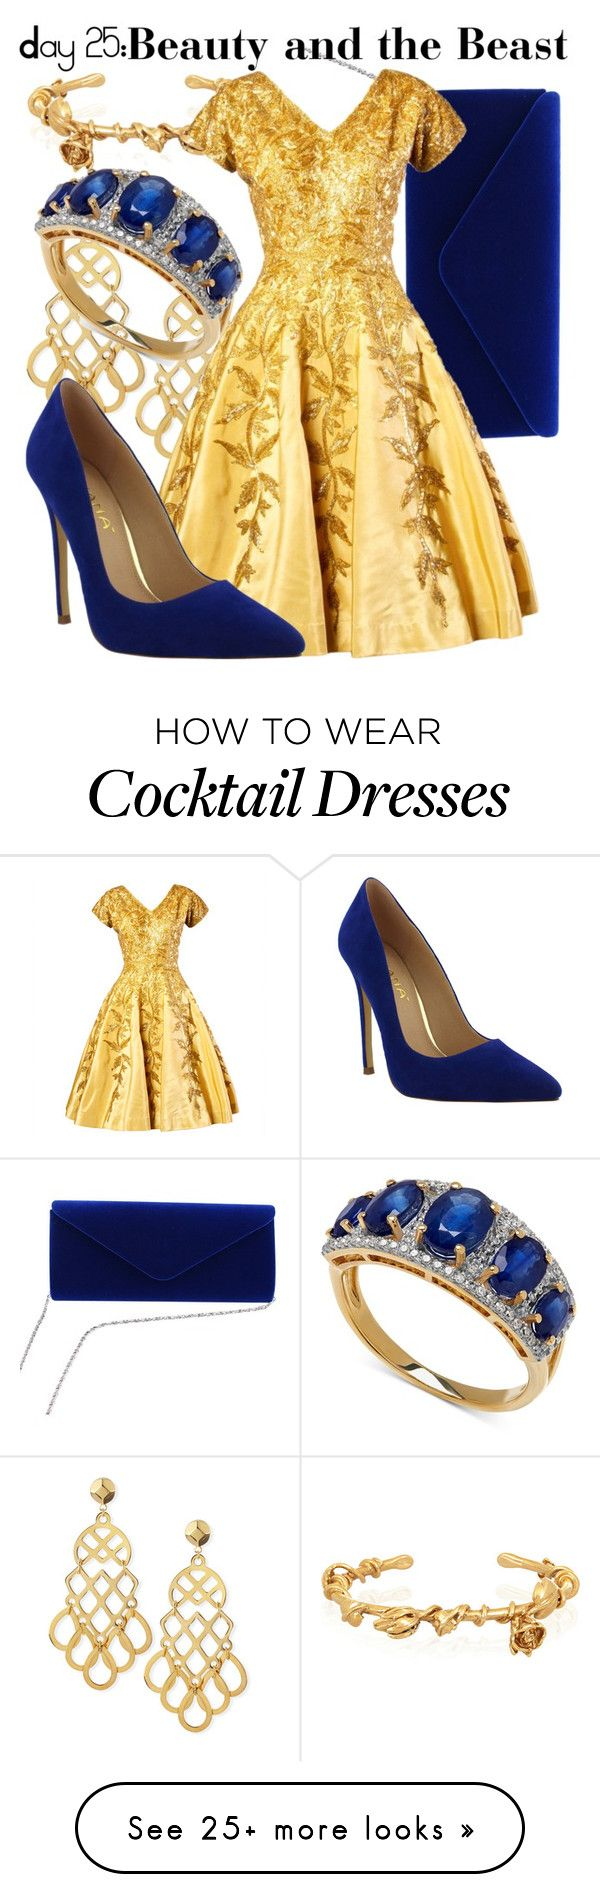 """""""Day 25: Favorite Dance- Beauty and the Beast"""" by fabulousgurl on Polyvore featuring Aurélie Bidermann and Tory Burch"""